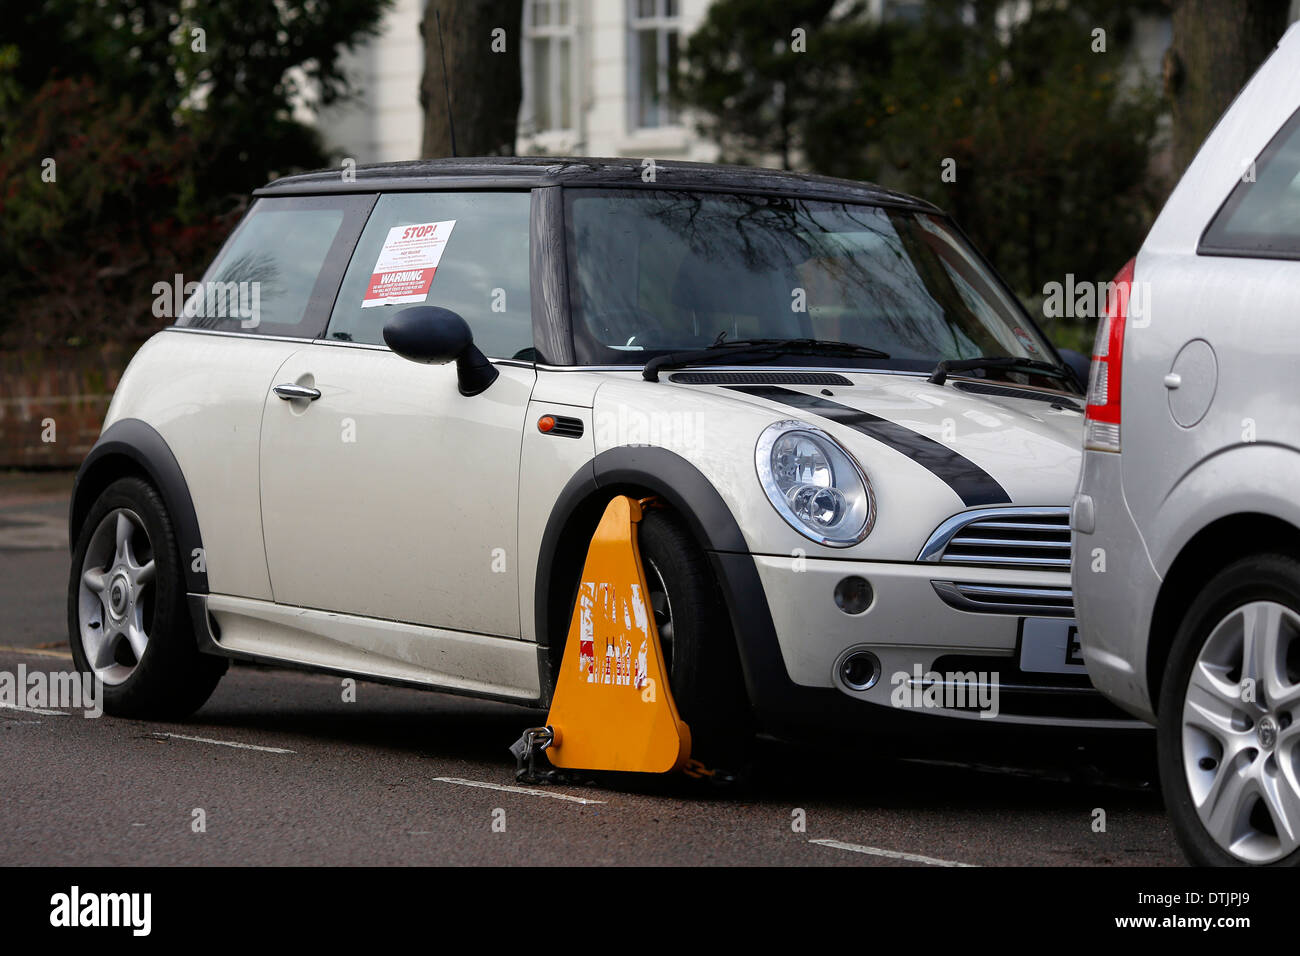 UK, London : A picture shows a clamped car on a road in London. - Stock Image